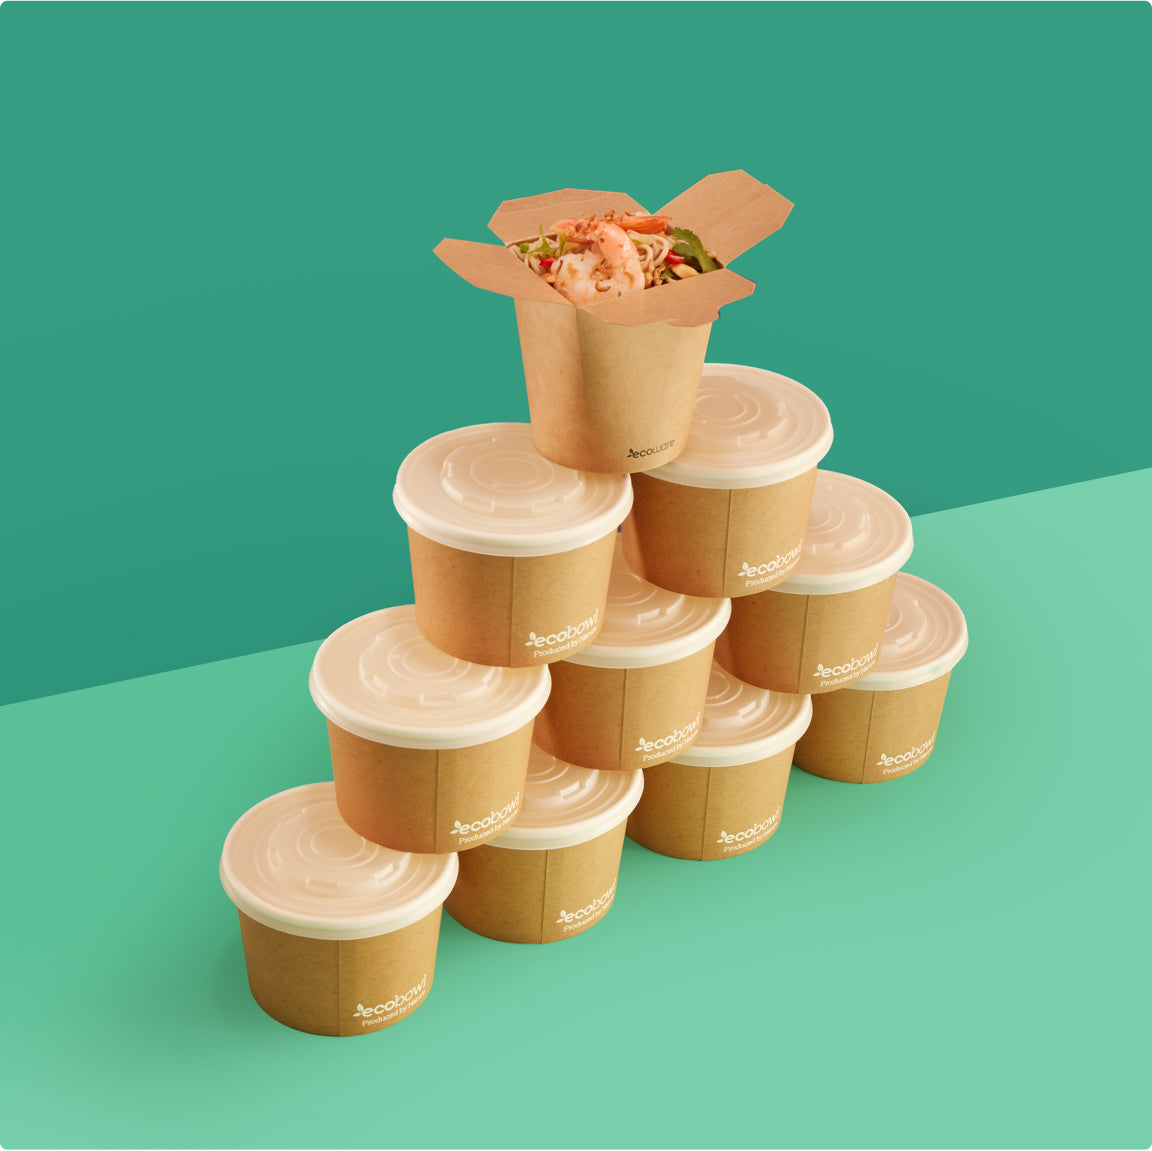 Ecoware Bamboo Food Packaging